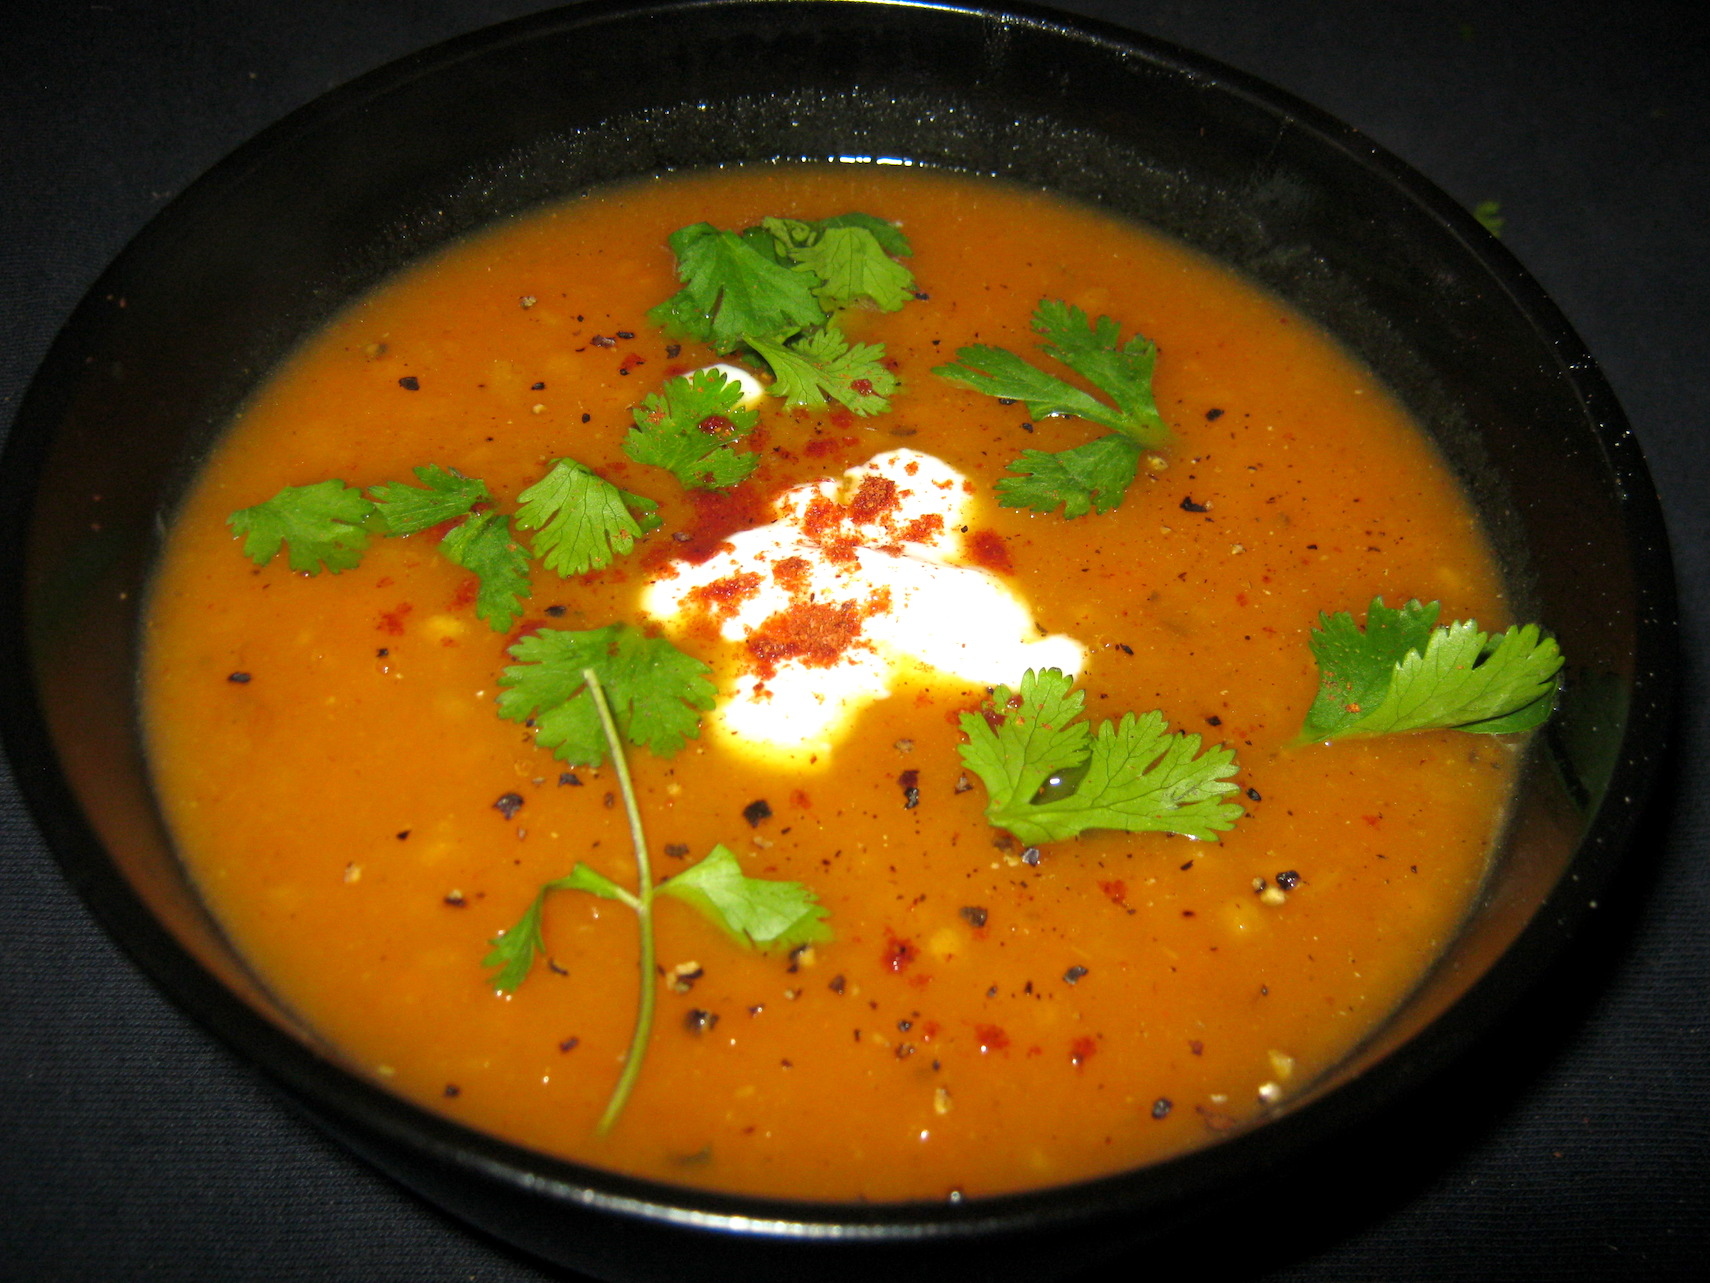 Sweet Potato Soup ala Alicia